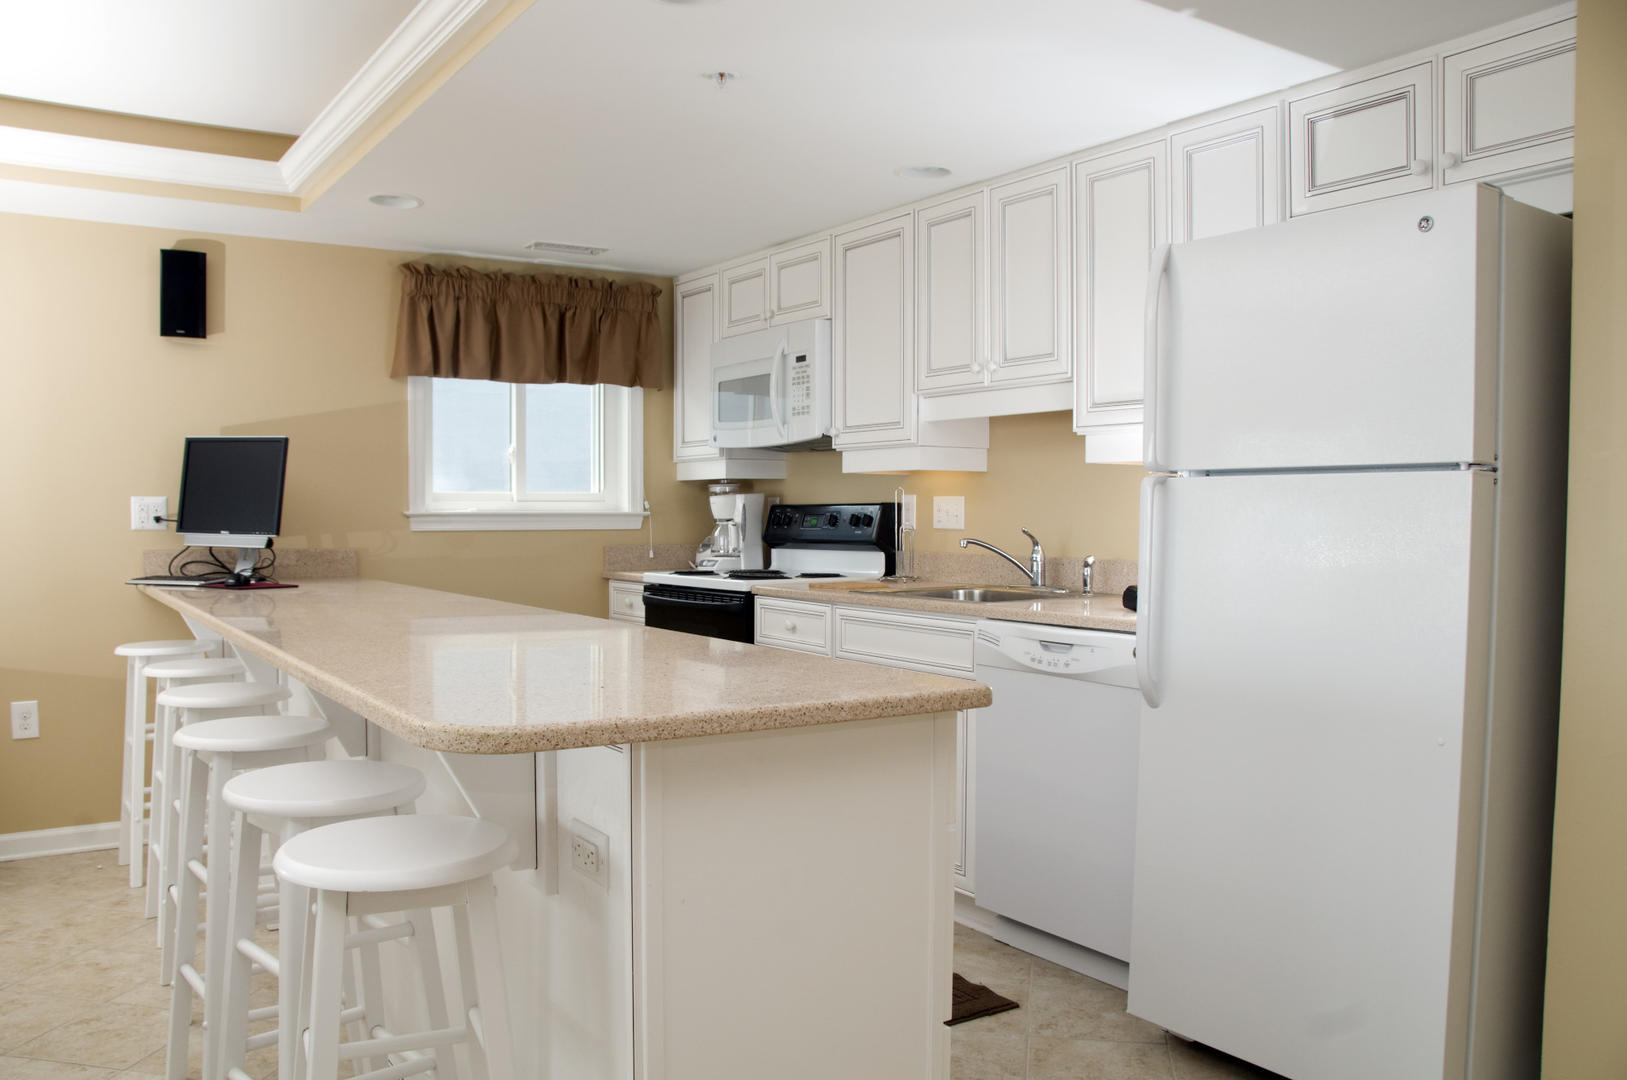 OC Boardwalk Suites S2 - Kitchen